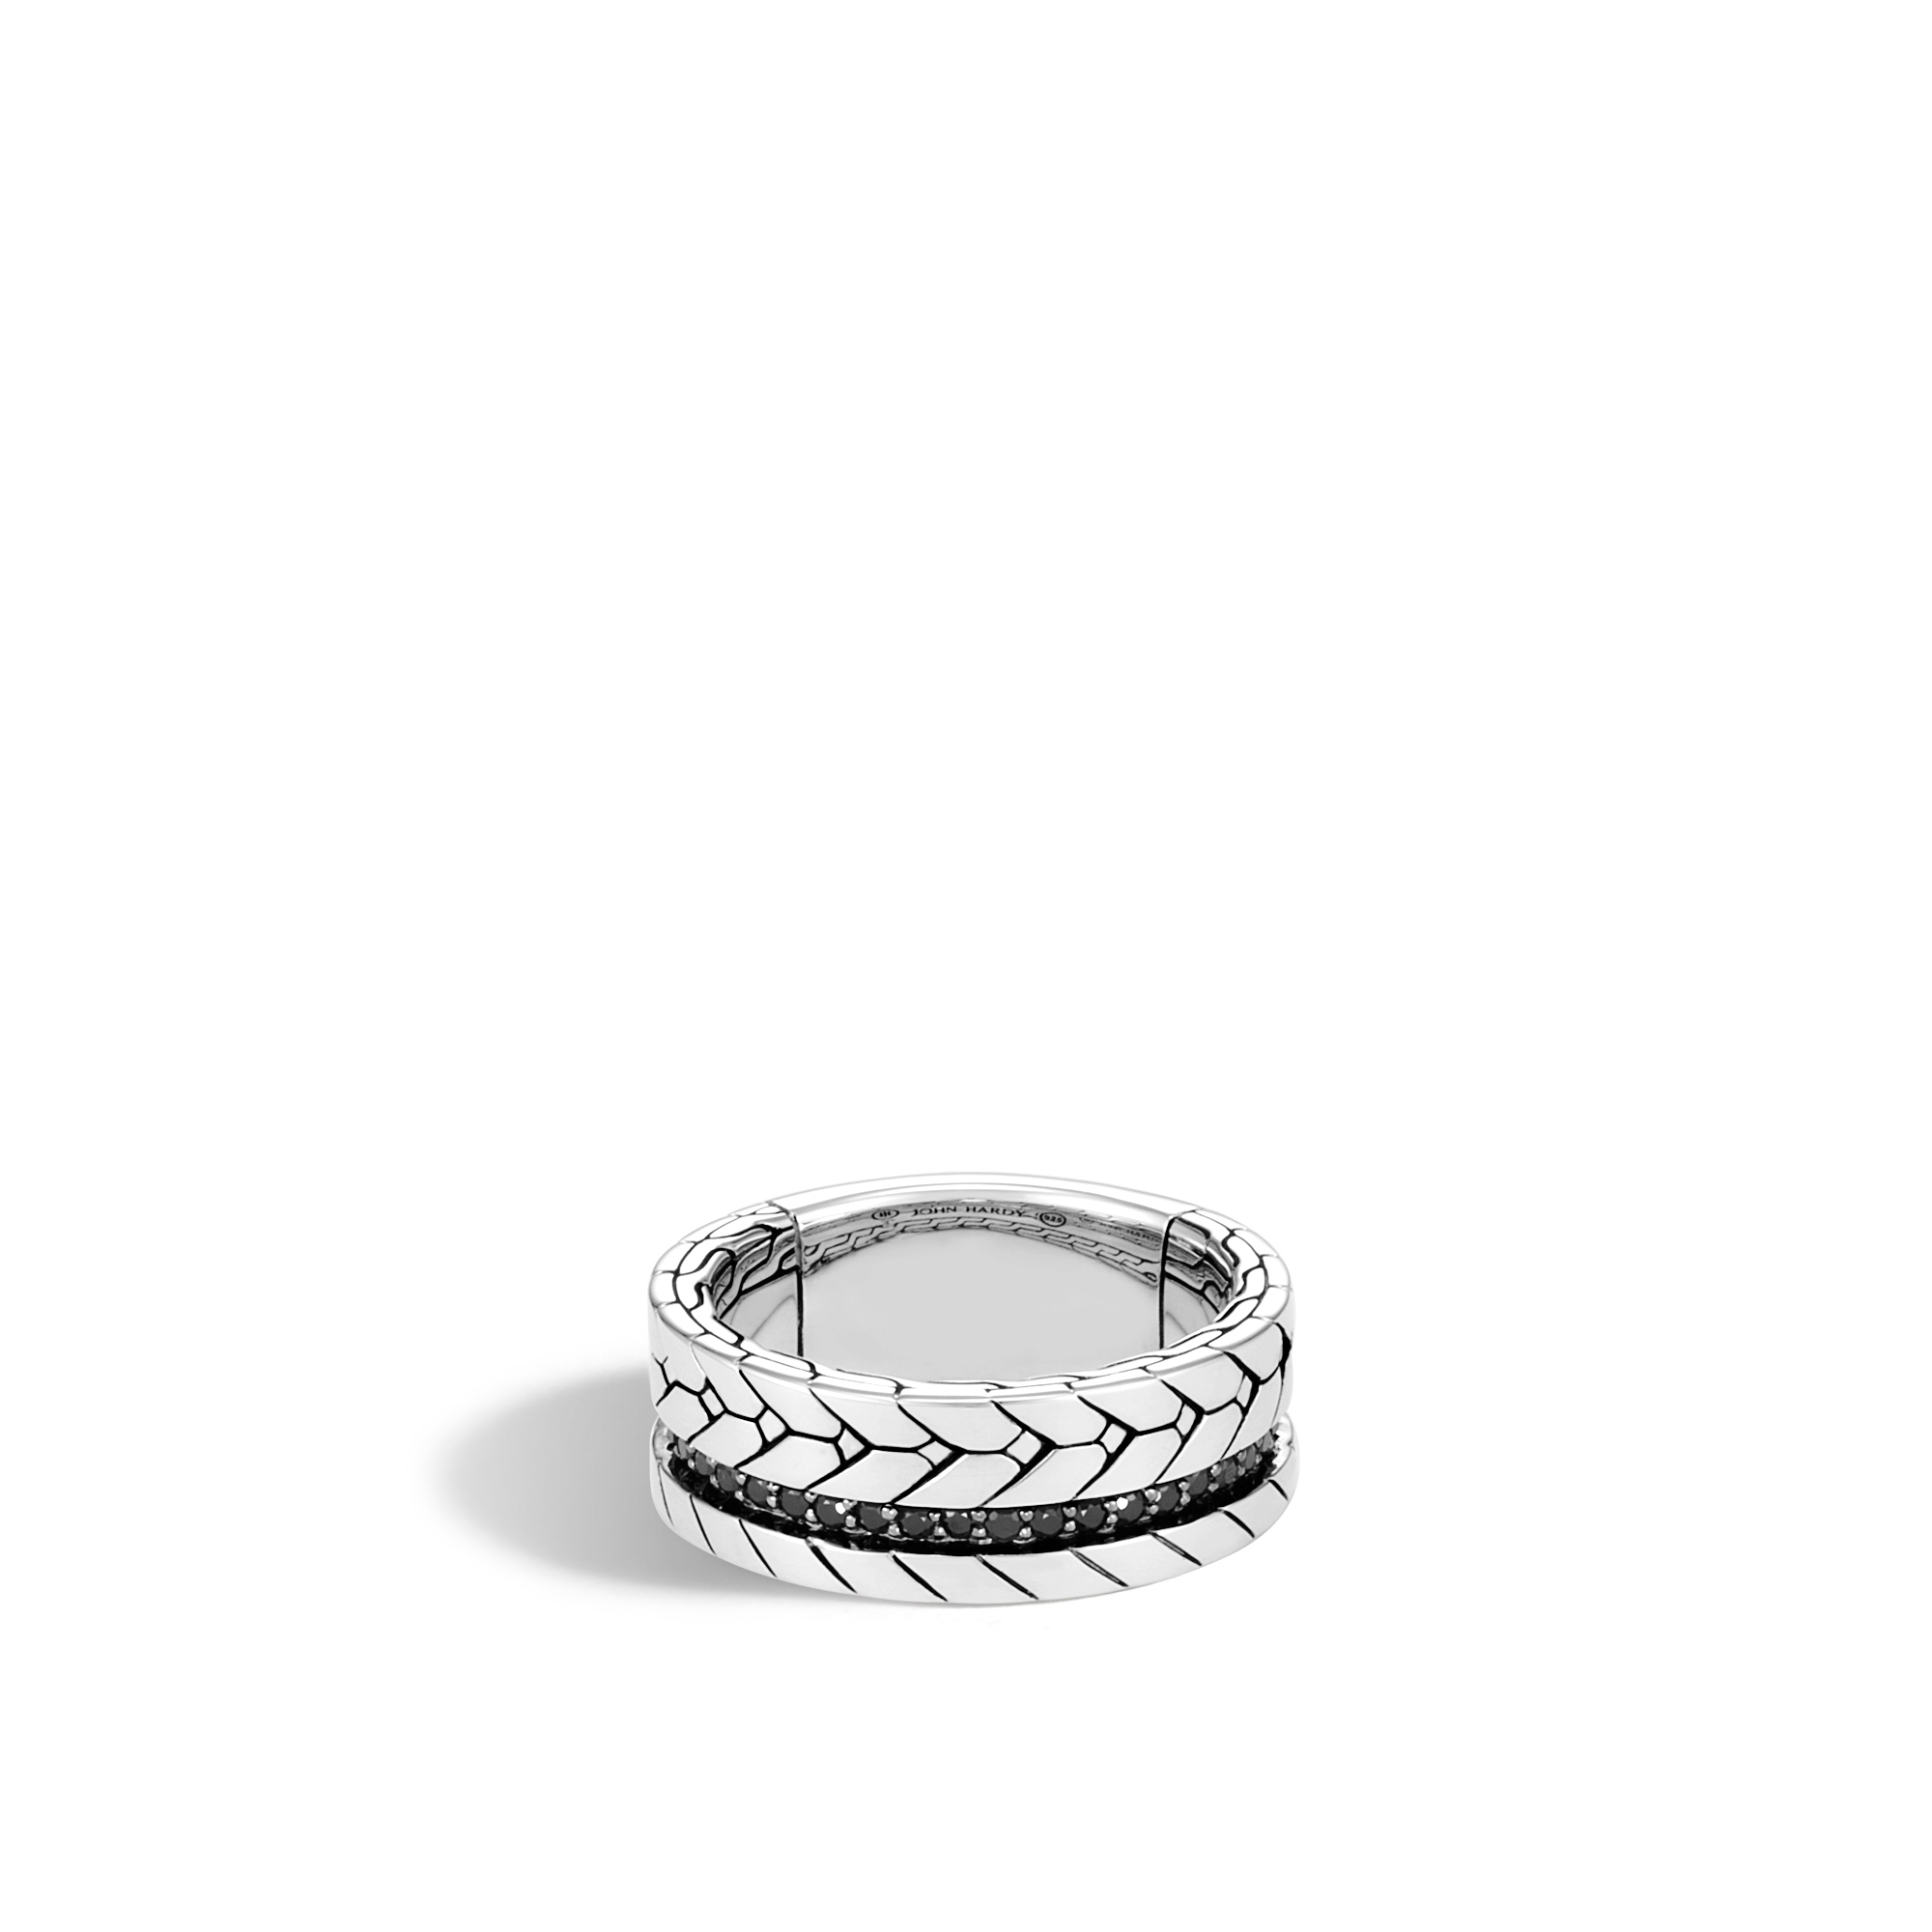 Modern Chain 9MM Band Ring in Silver with Gemstone, Black Spinel, large